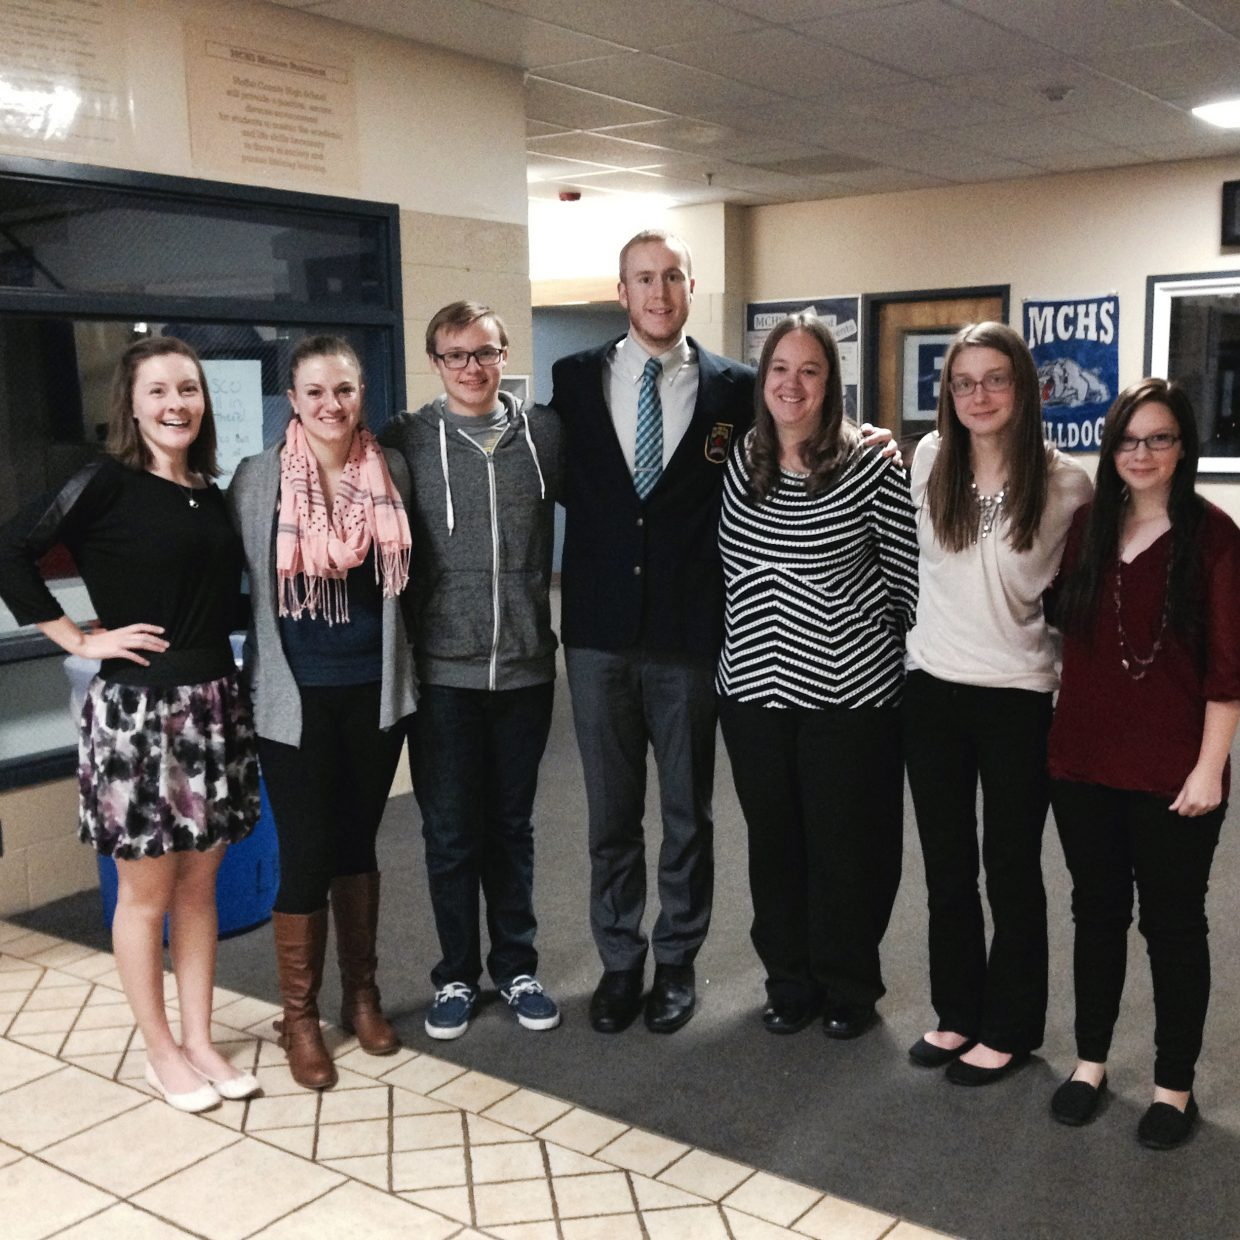 The members of Moffat County High School's DECA and Future Business Leaders of America teams convene with adviser Krista Schenck before a Wednesday workshop open to community members to learn about job interview skills, resume building and other tools necessary when seeking employment.